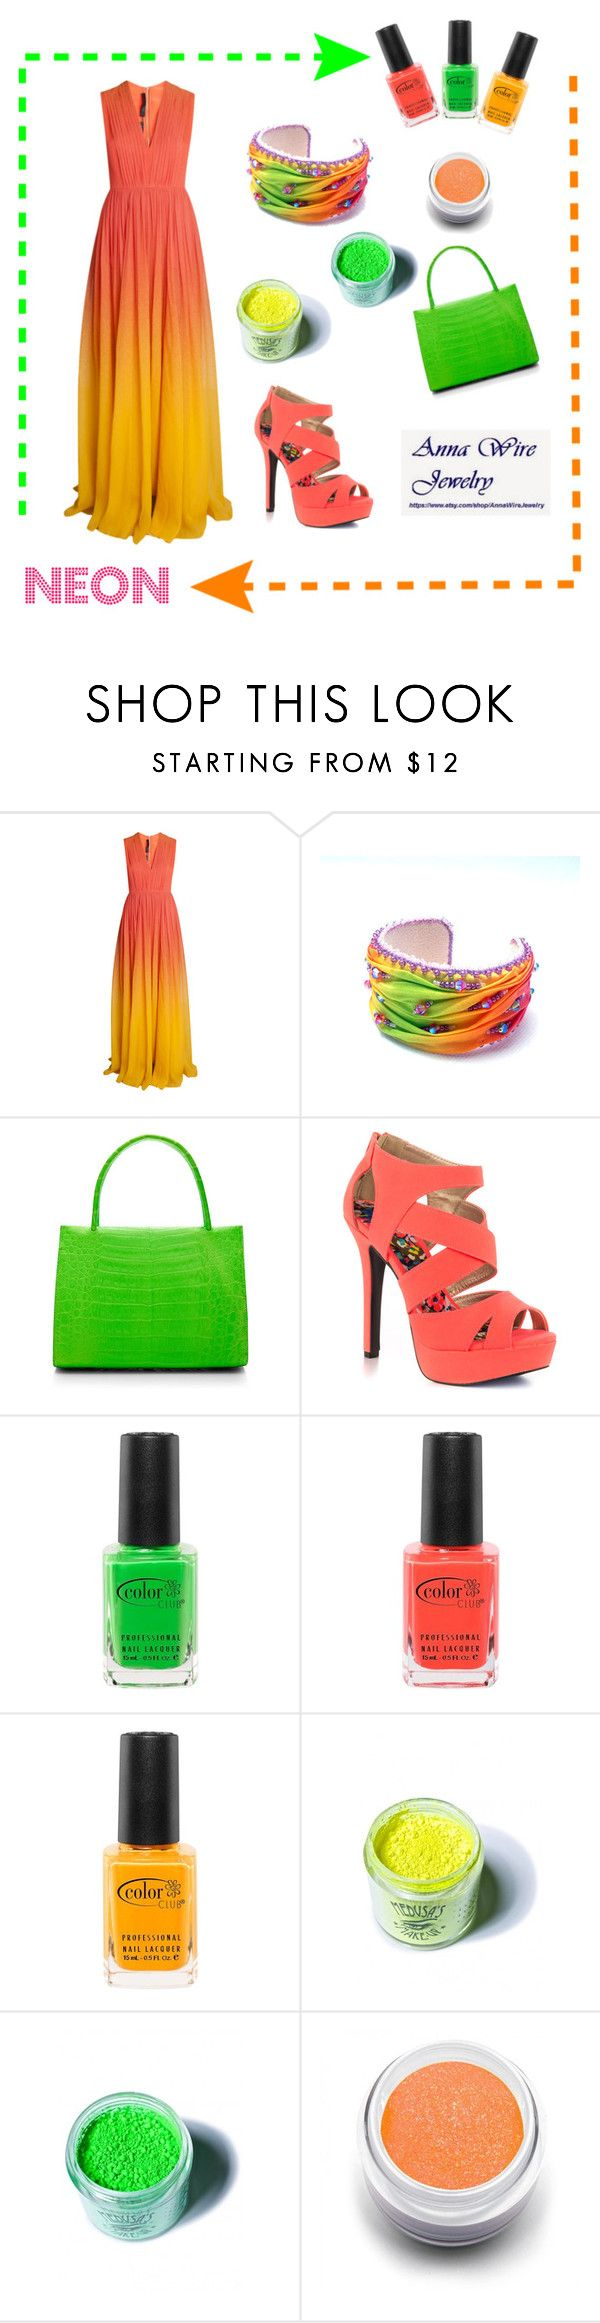 """""""Wear neon!"""" by monaline ❤ liked on Polyvore featuring Elie Saab, Nancy Gonzalez, Qupid, Color Club, Medusa's Makeup and Sugarpill"""